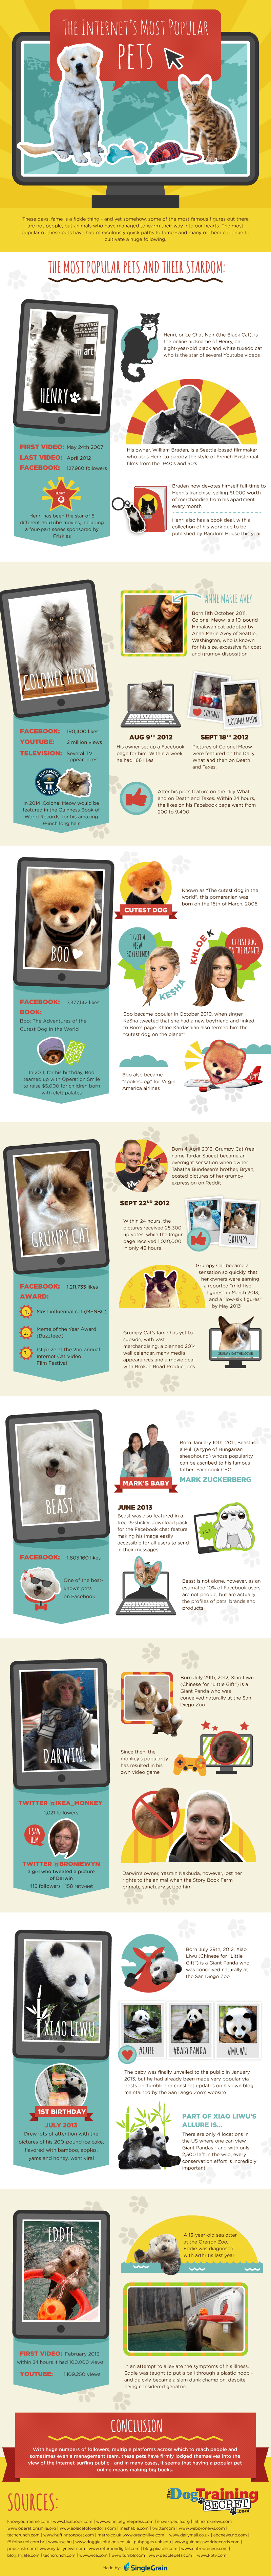 The Internets Most Popular Pets Infographic